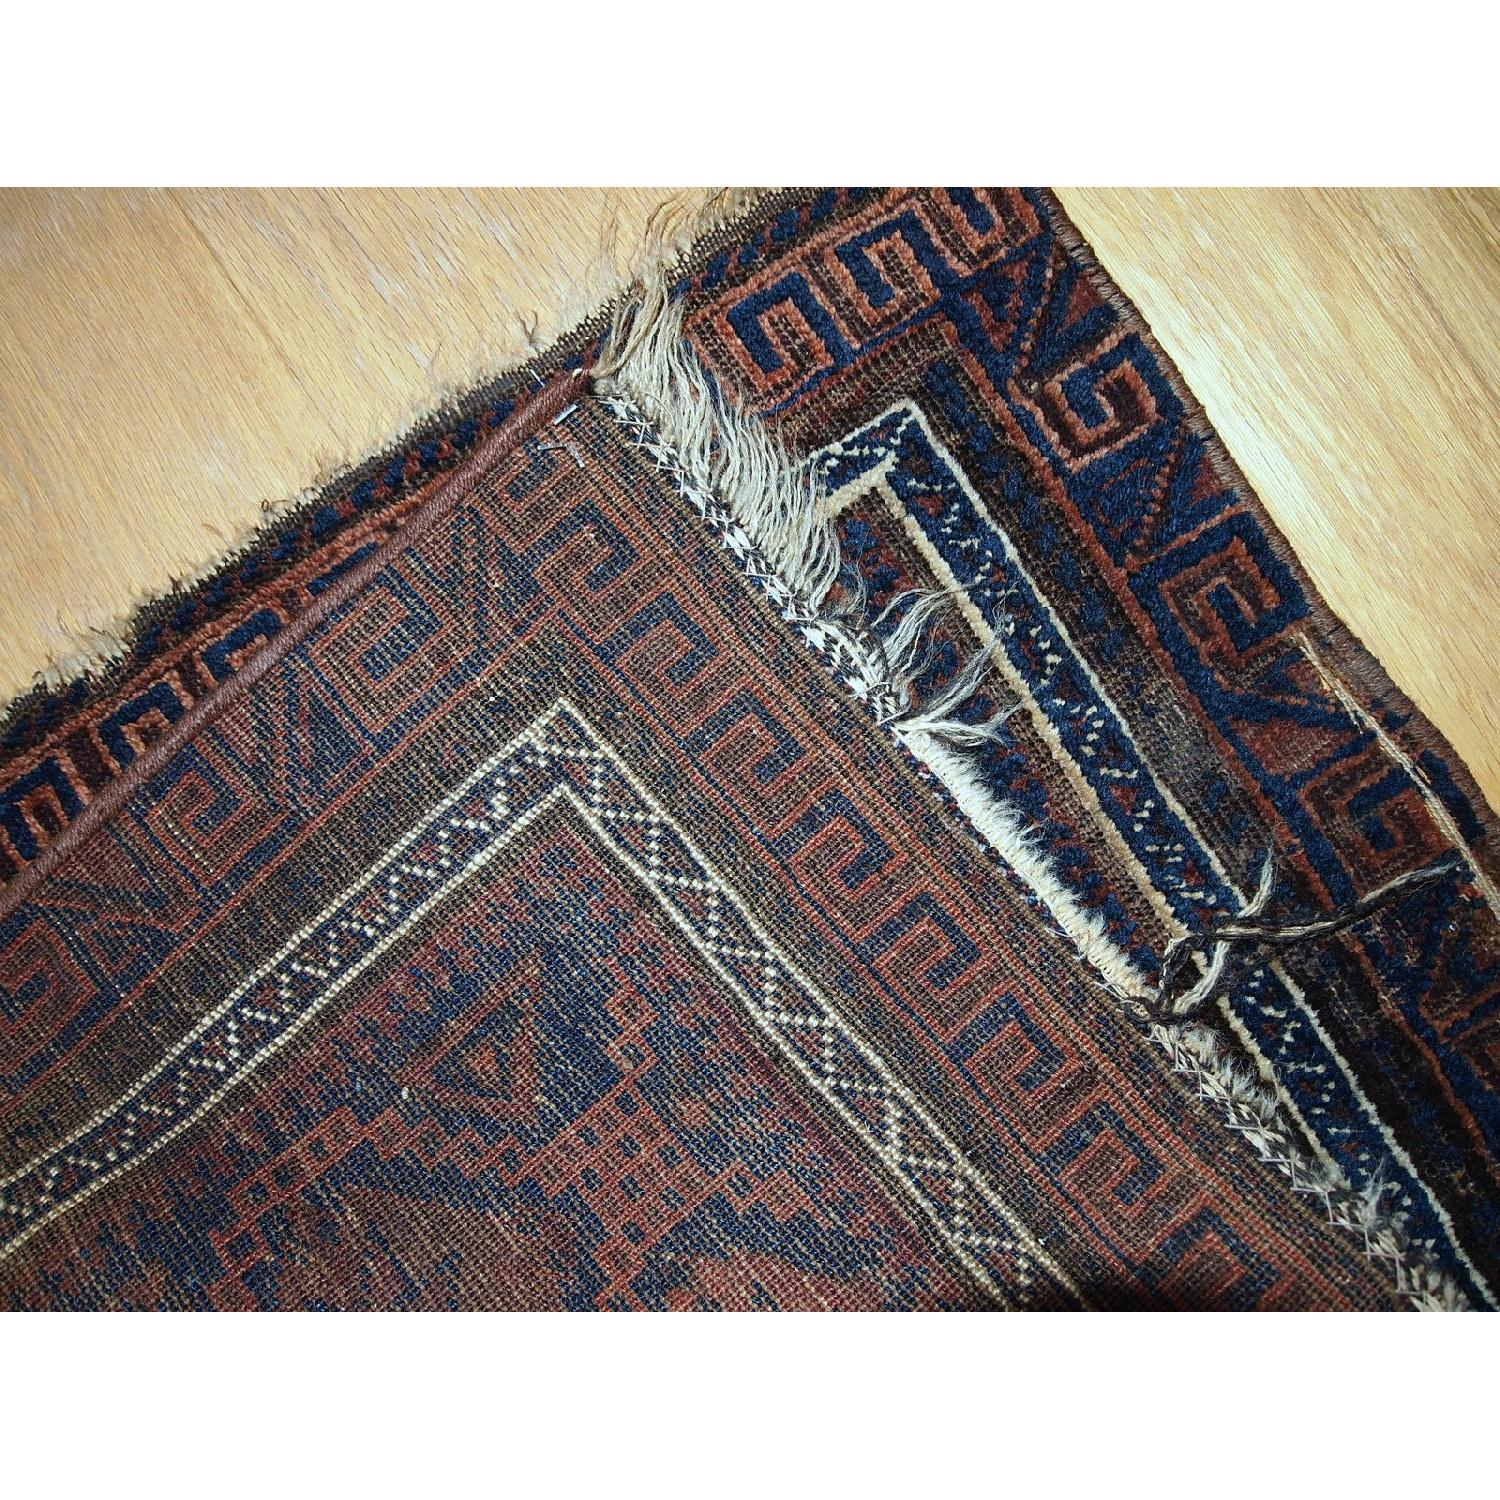 Antique Handmade Collectible Afghan Baluch Bag Face Rug - image-3